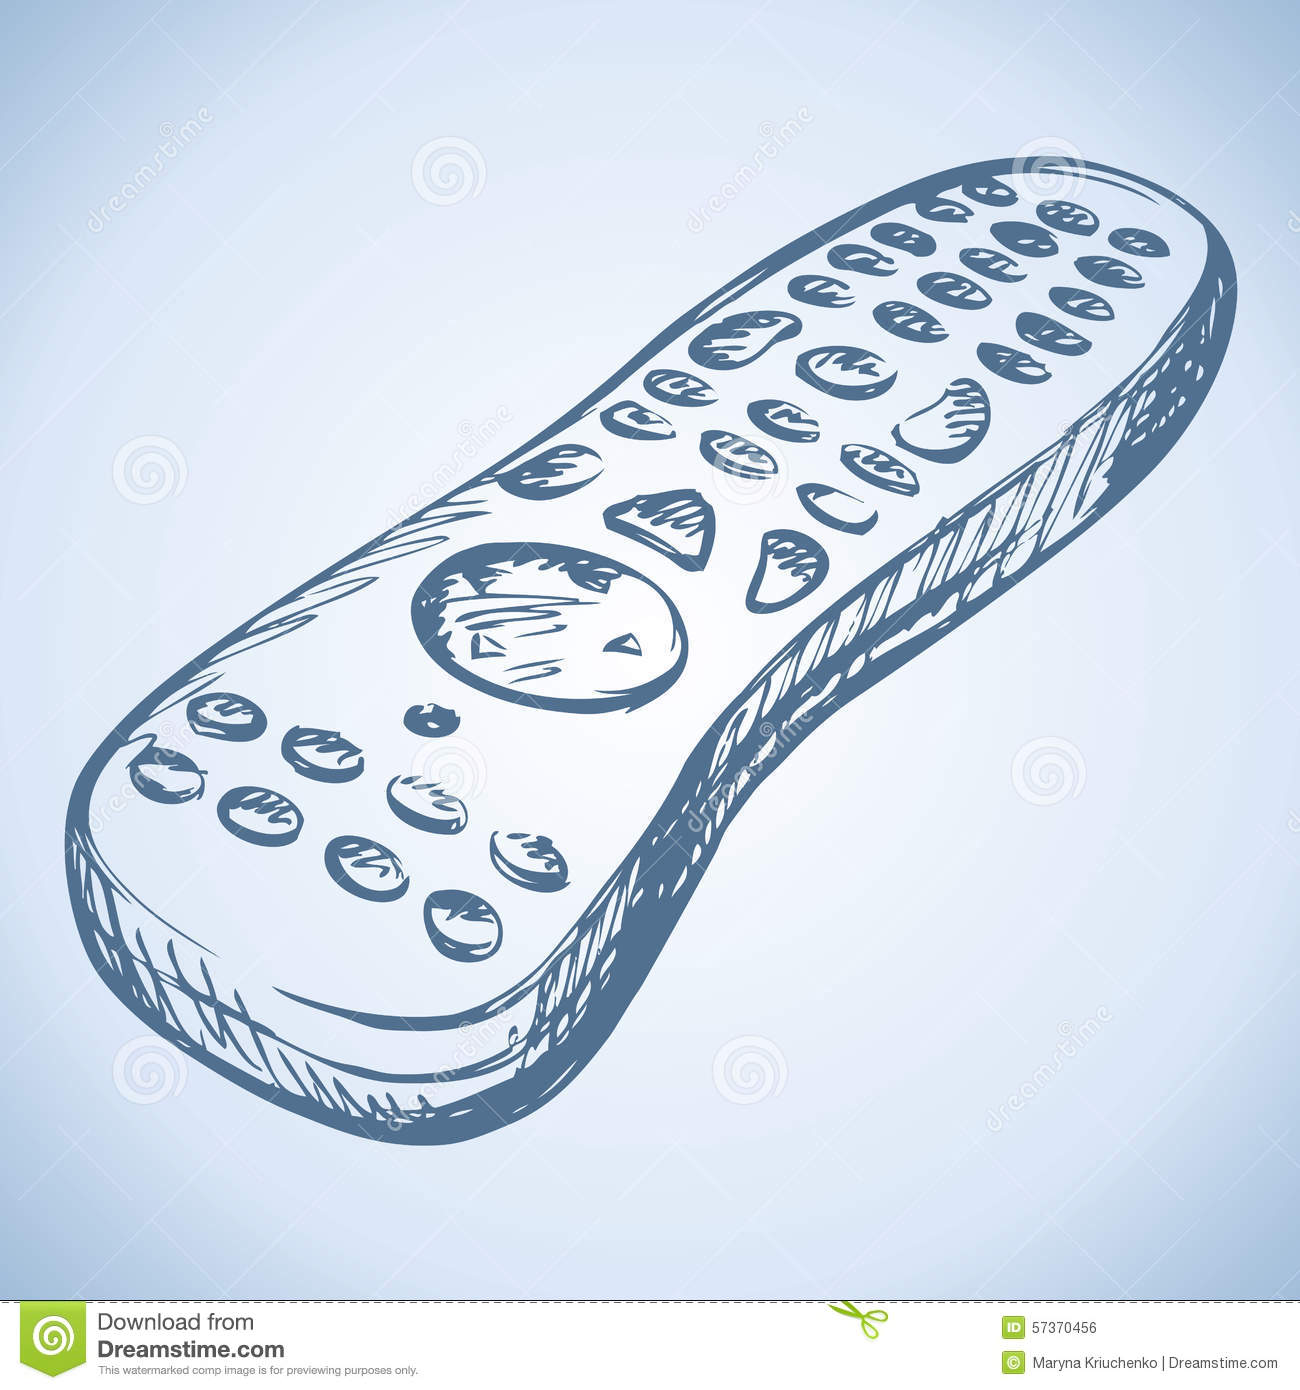 remote control drawing. royalty-free vector. download remote control. control drawing